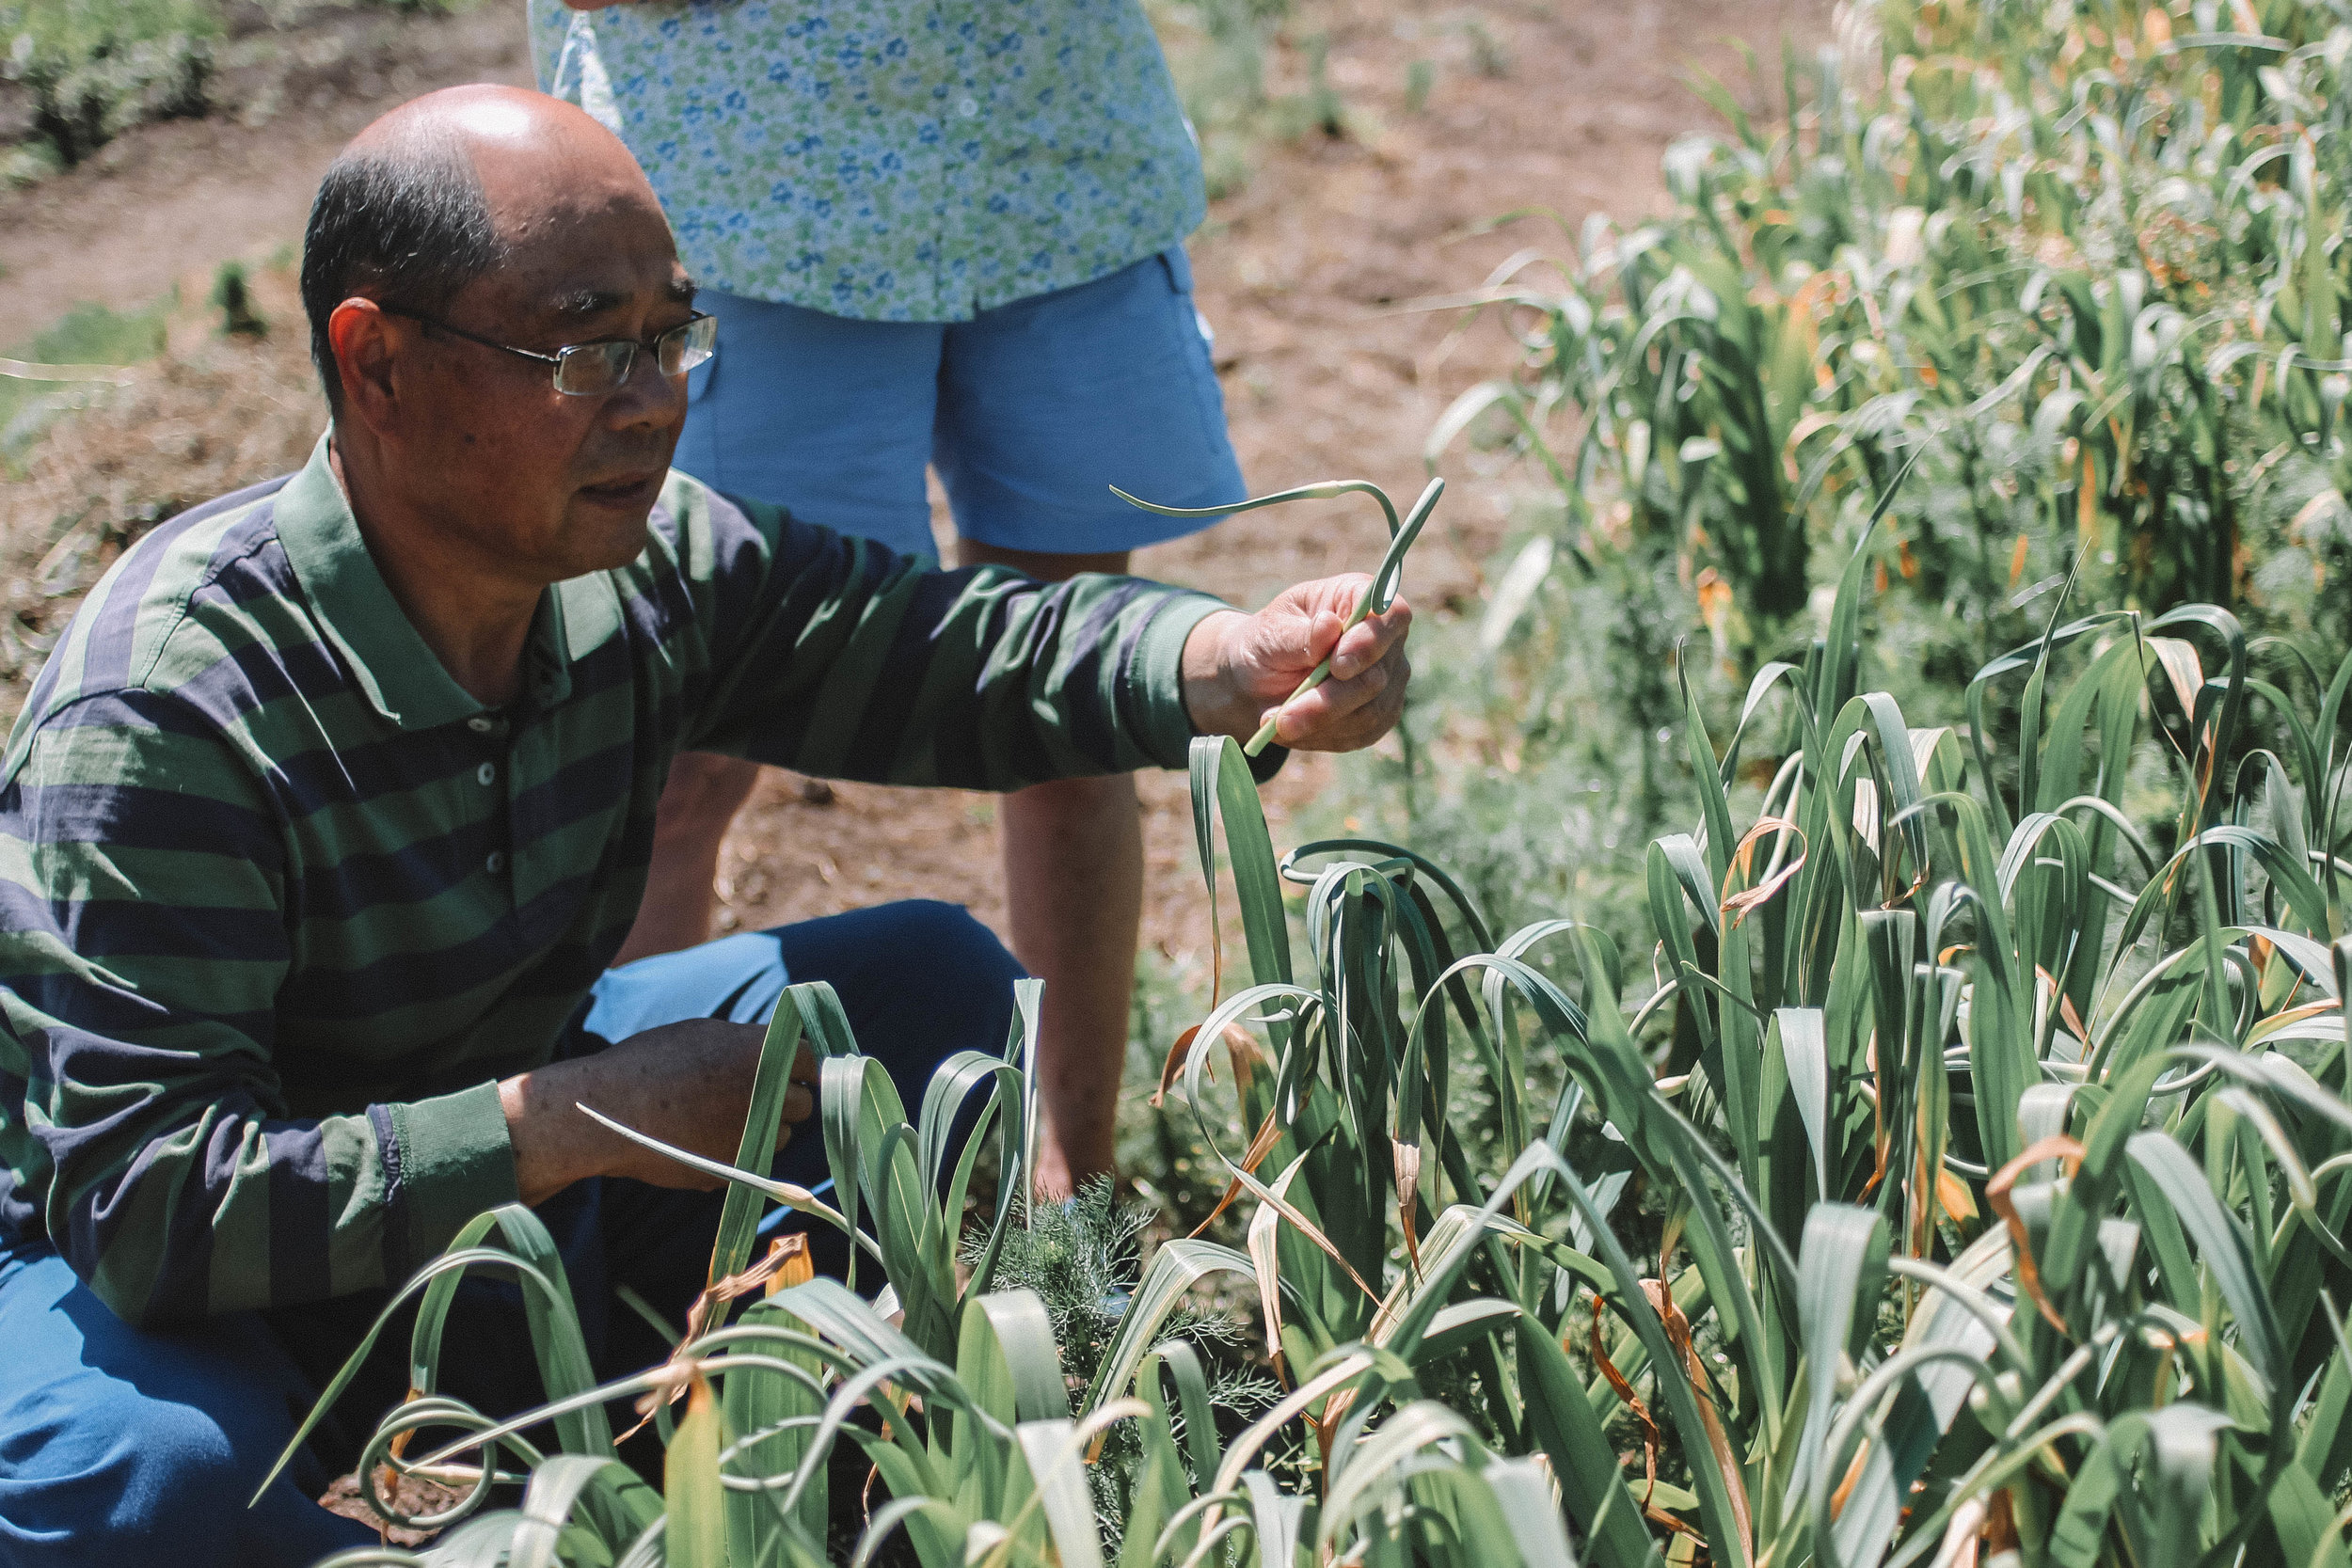 Da-Jin demonstrates how to find a perfect garlic scape